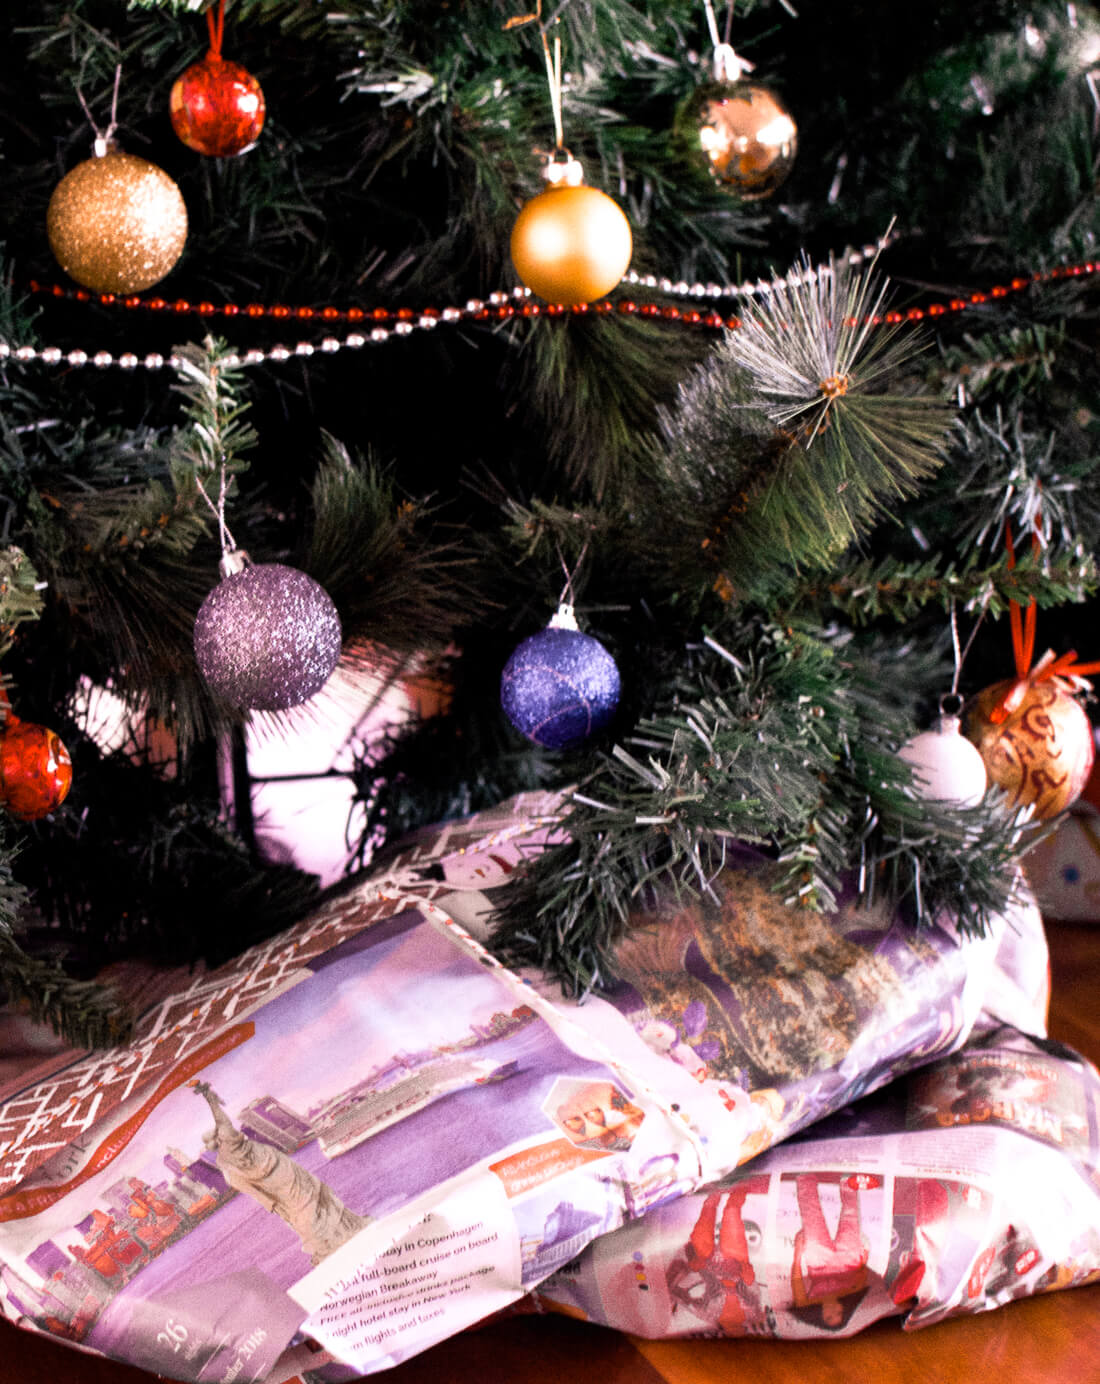 Presents under a Christmas tree wrapped in eco friendly recyclable christmas paper